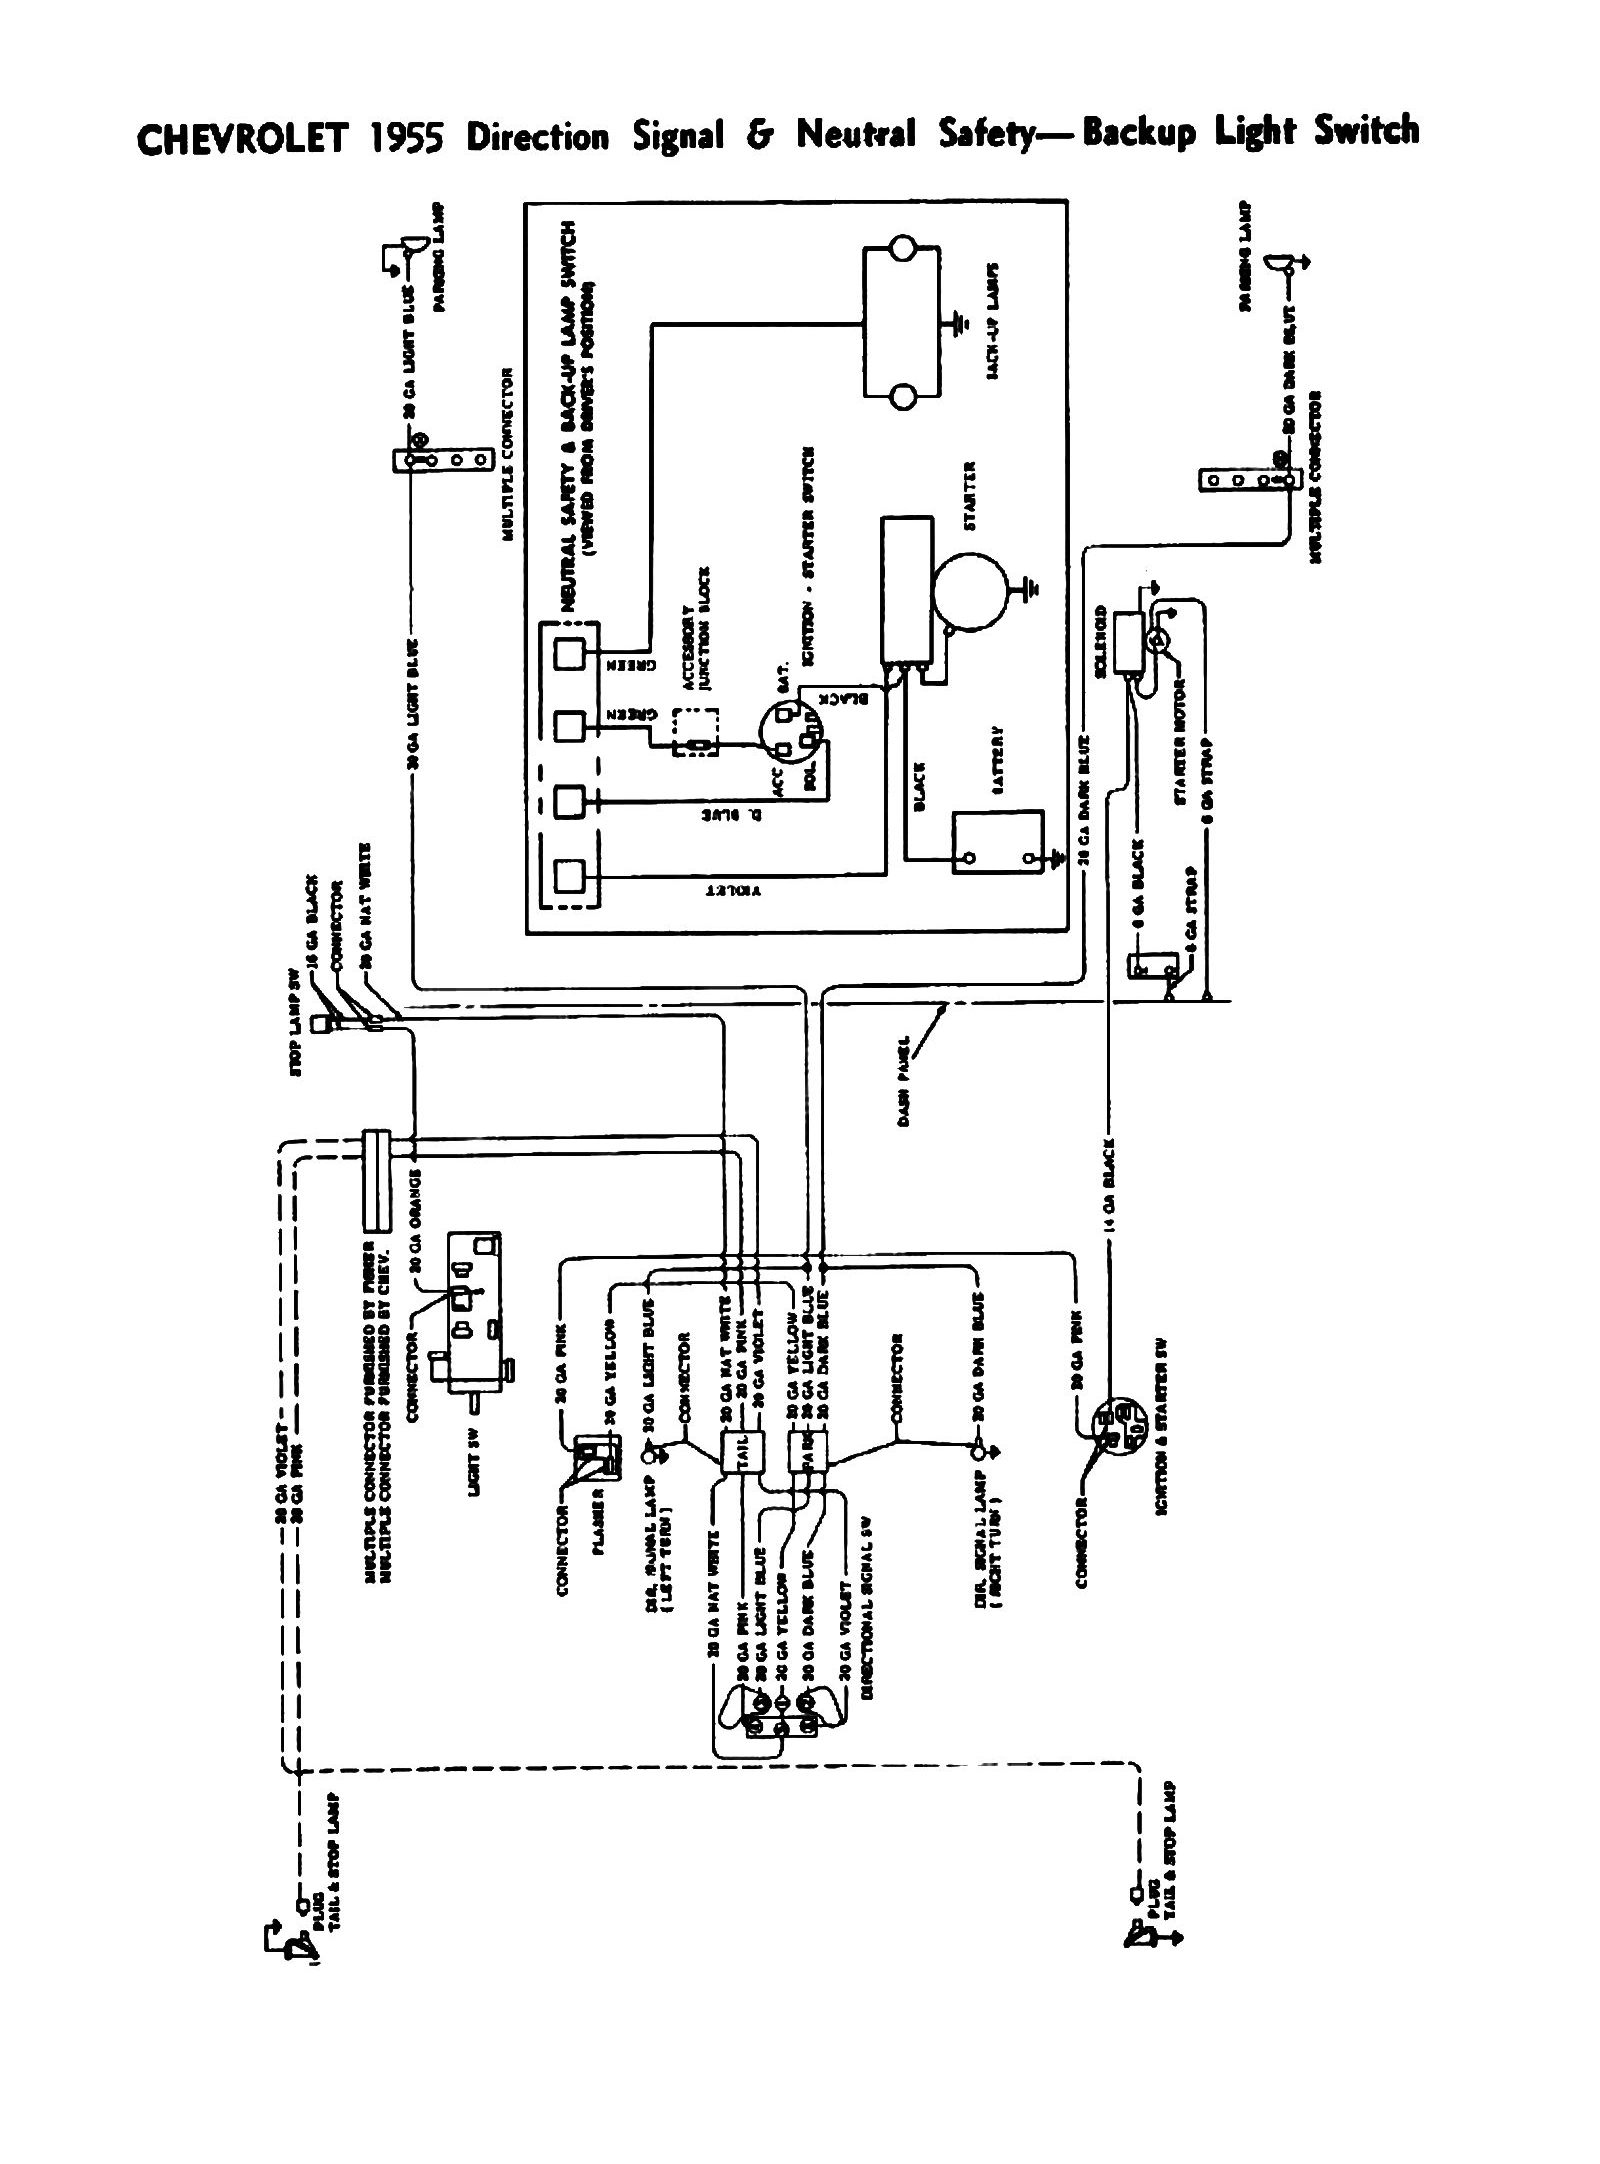 57 chevy wiring diagram wiring diagram and schematic design 57 65 chevy wiring diagrams